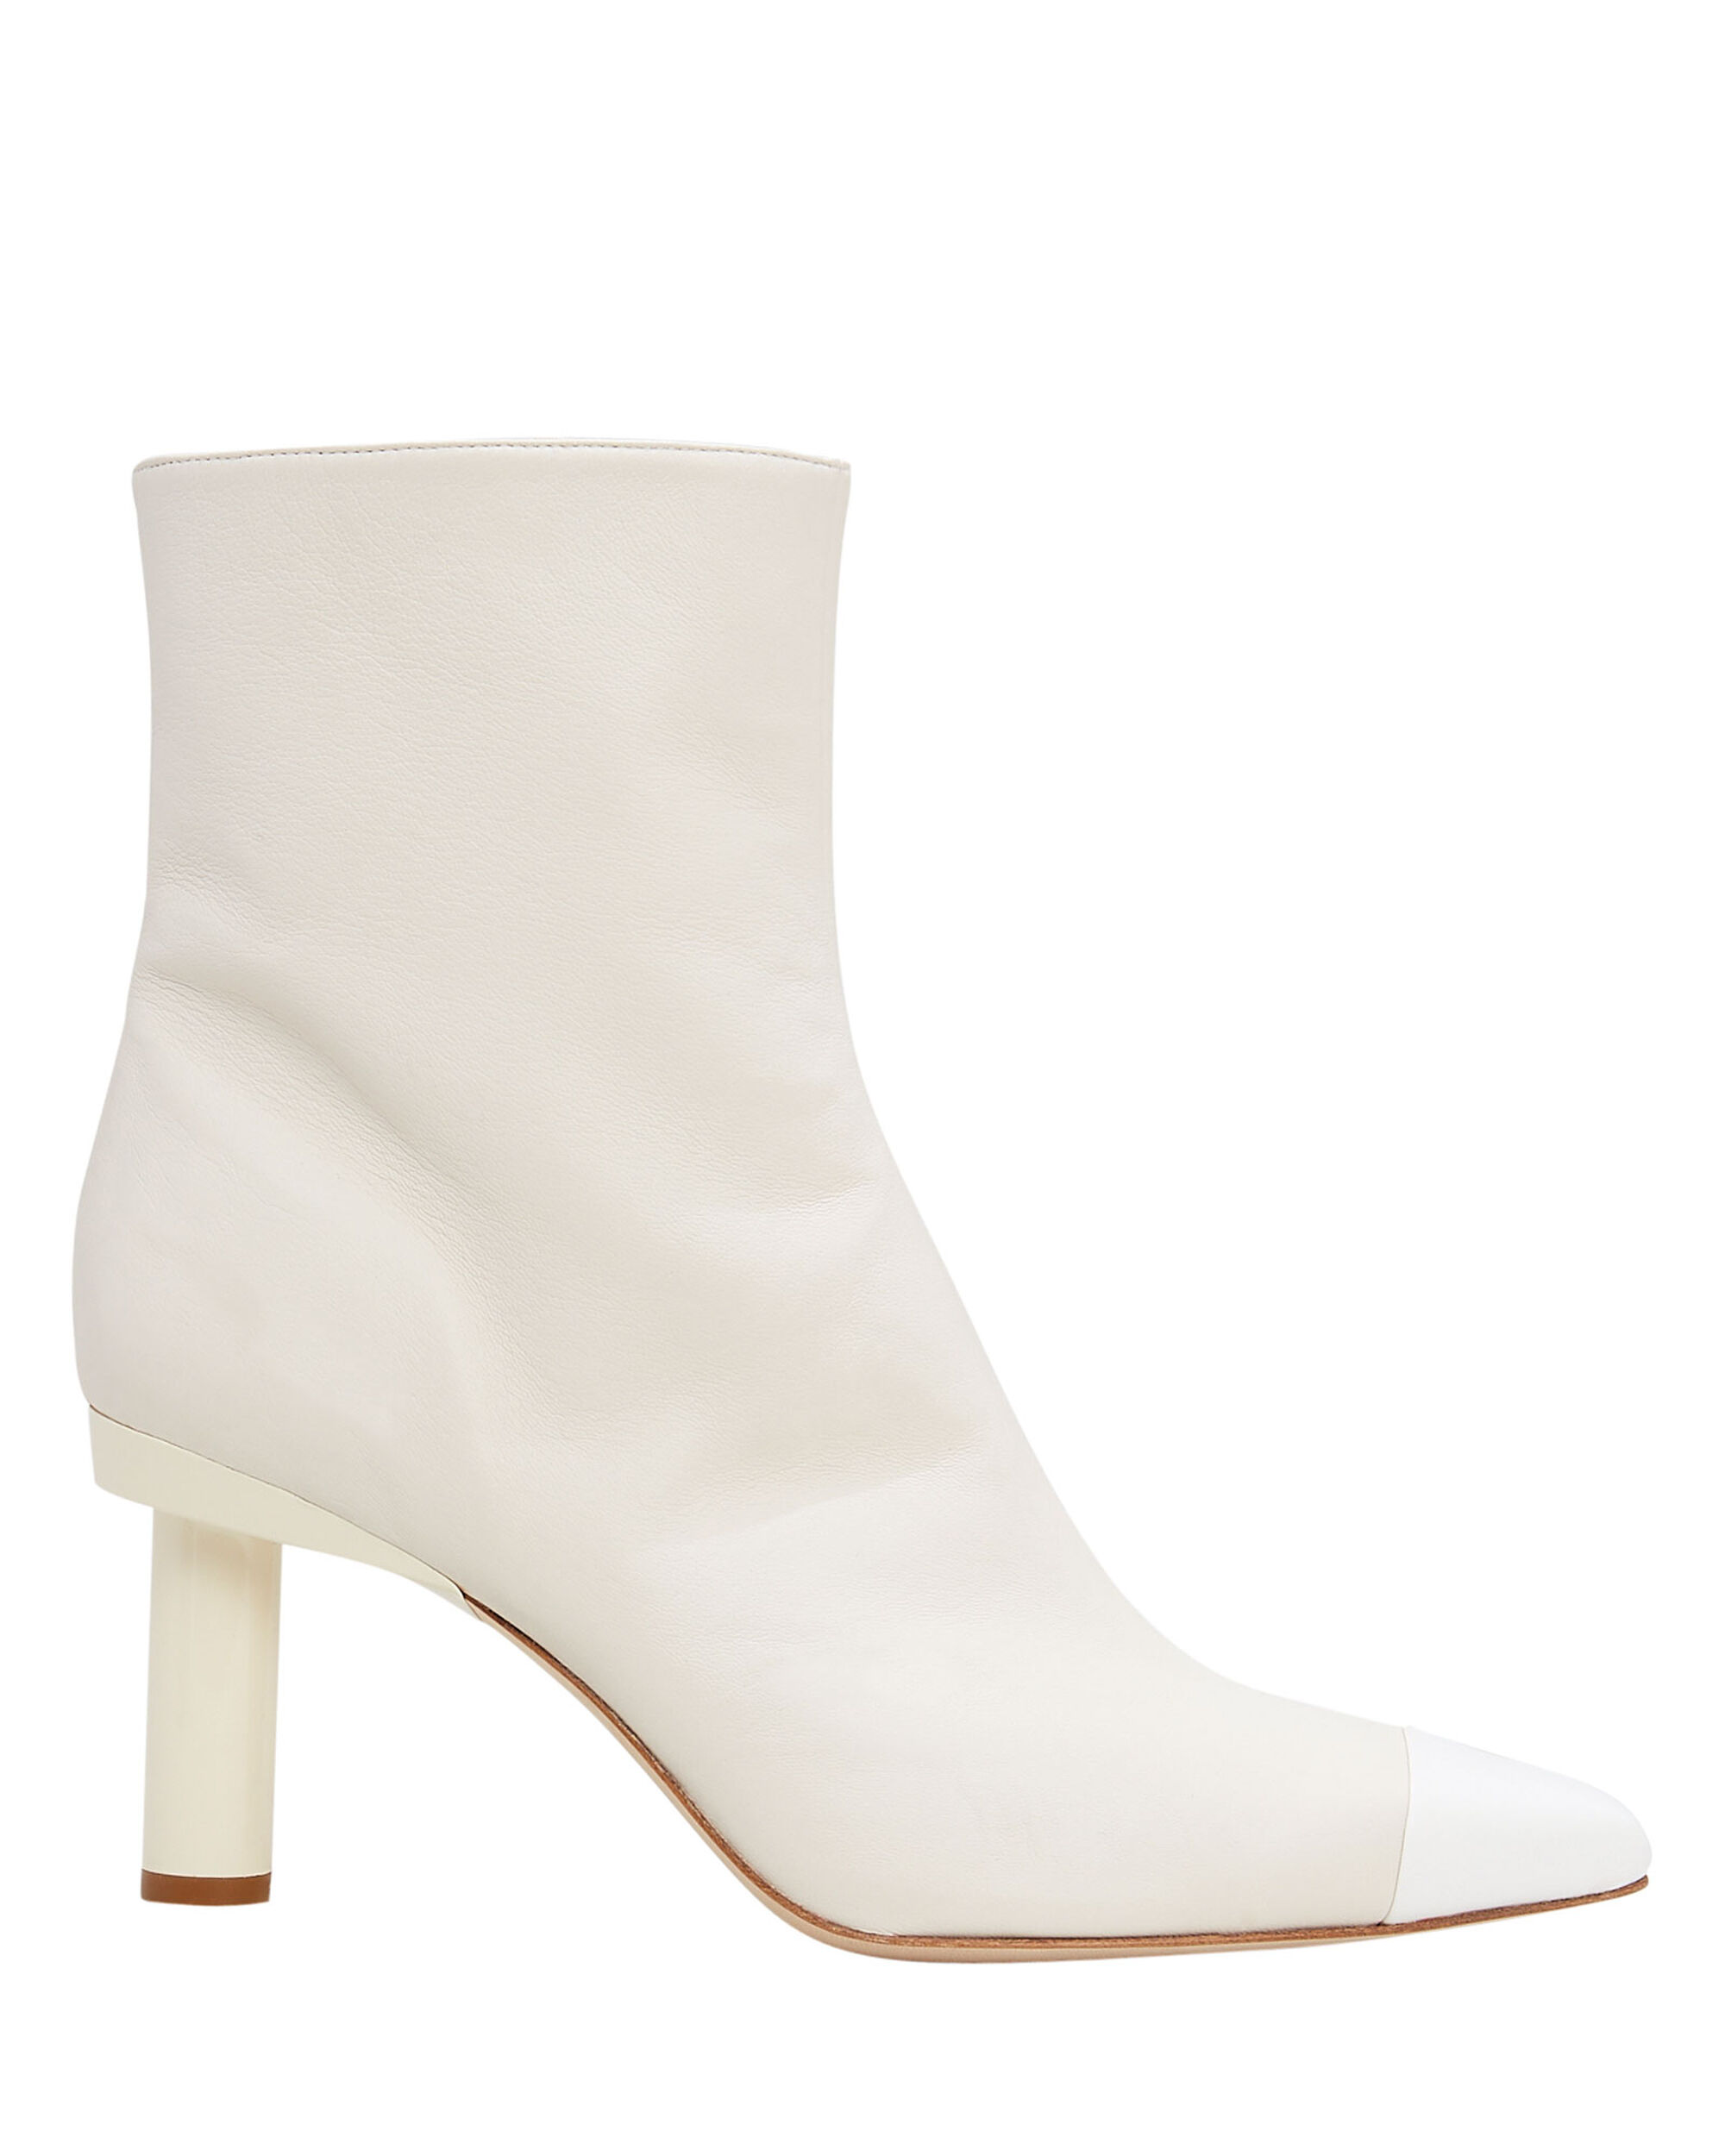 Grant Ivory Leather Booties, IVORY/WHITE, hi-res